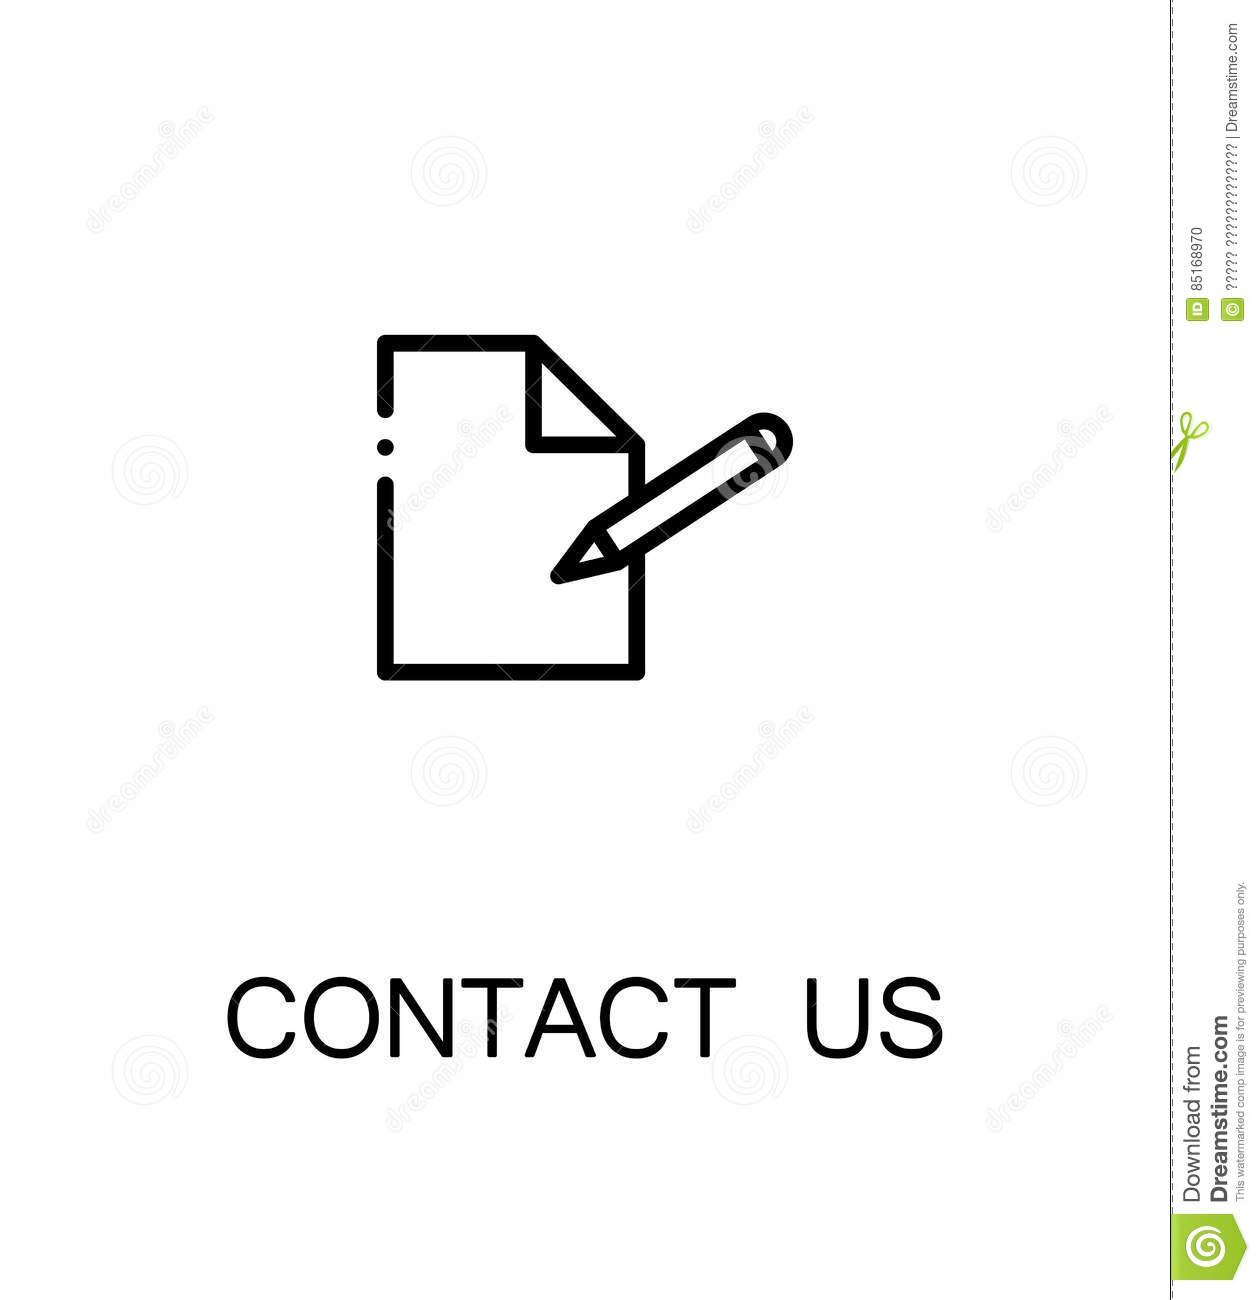 Contact Us Icon Stock Vector Illustration Of Internet